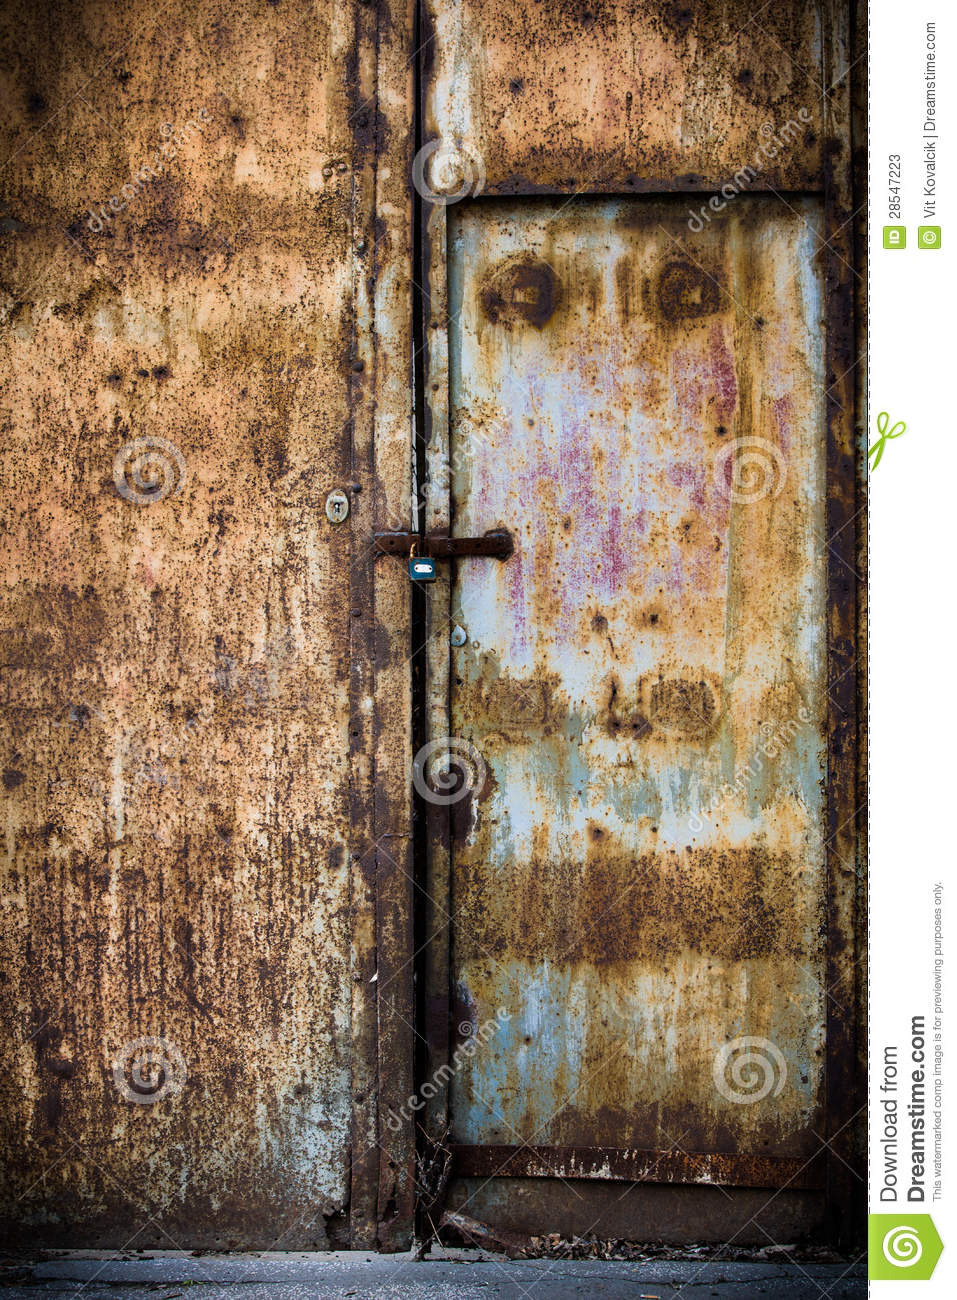 Rusty Door rusted iron door image gallery - hcpr